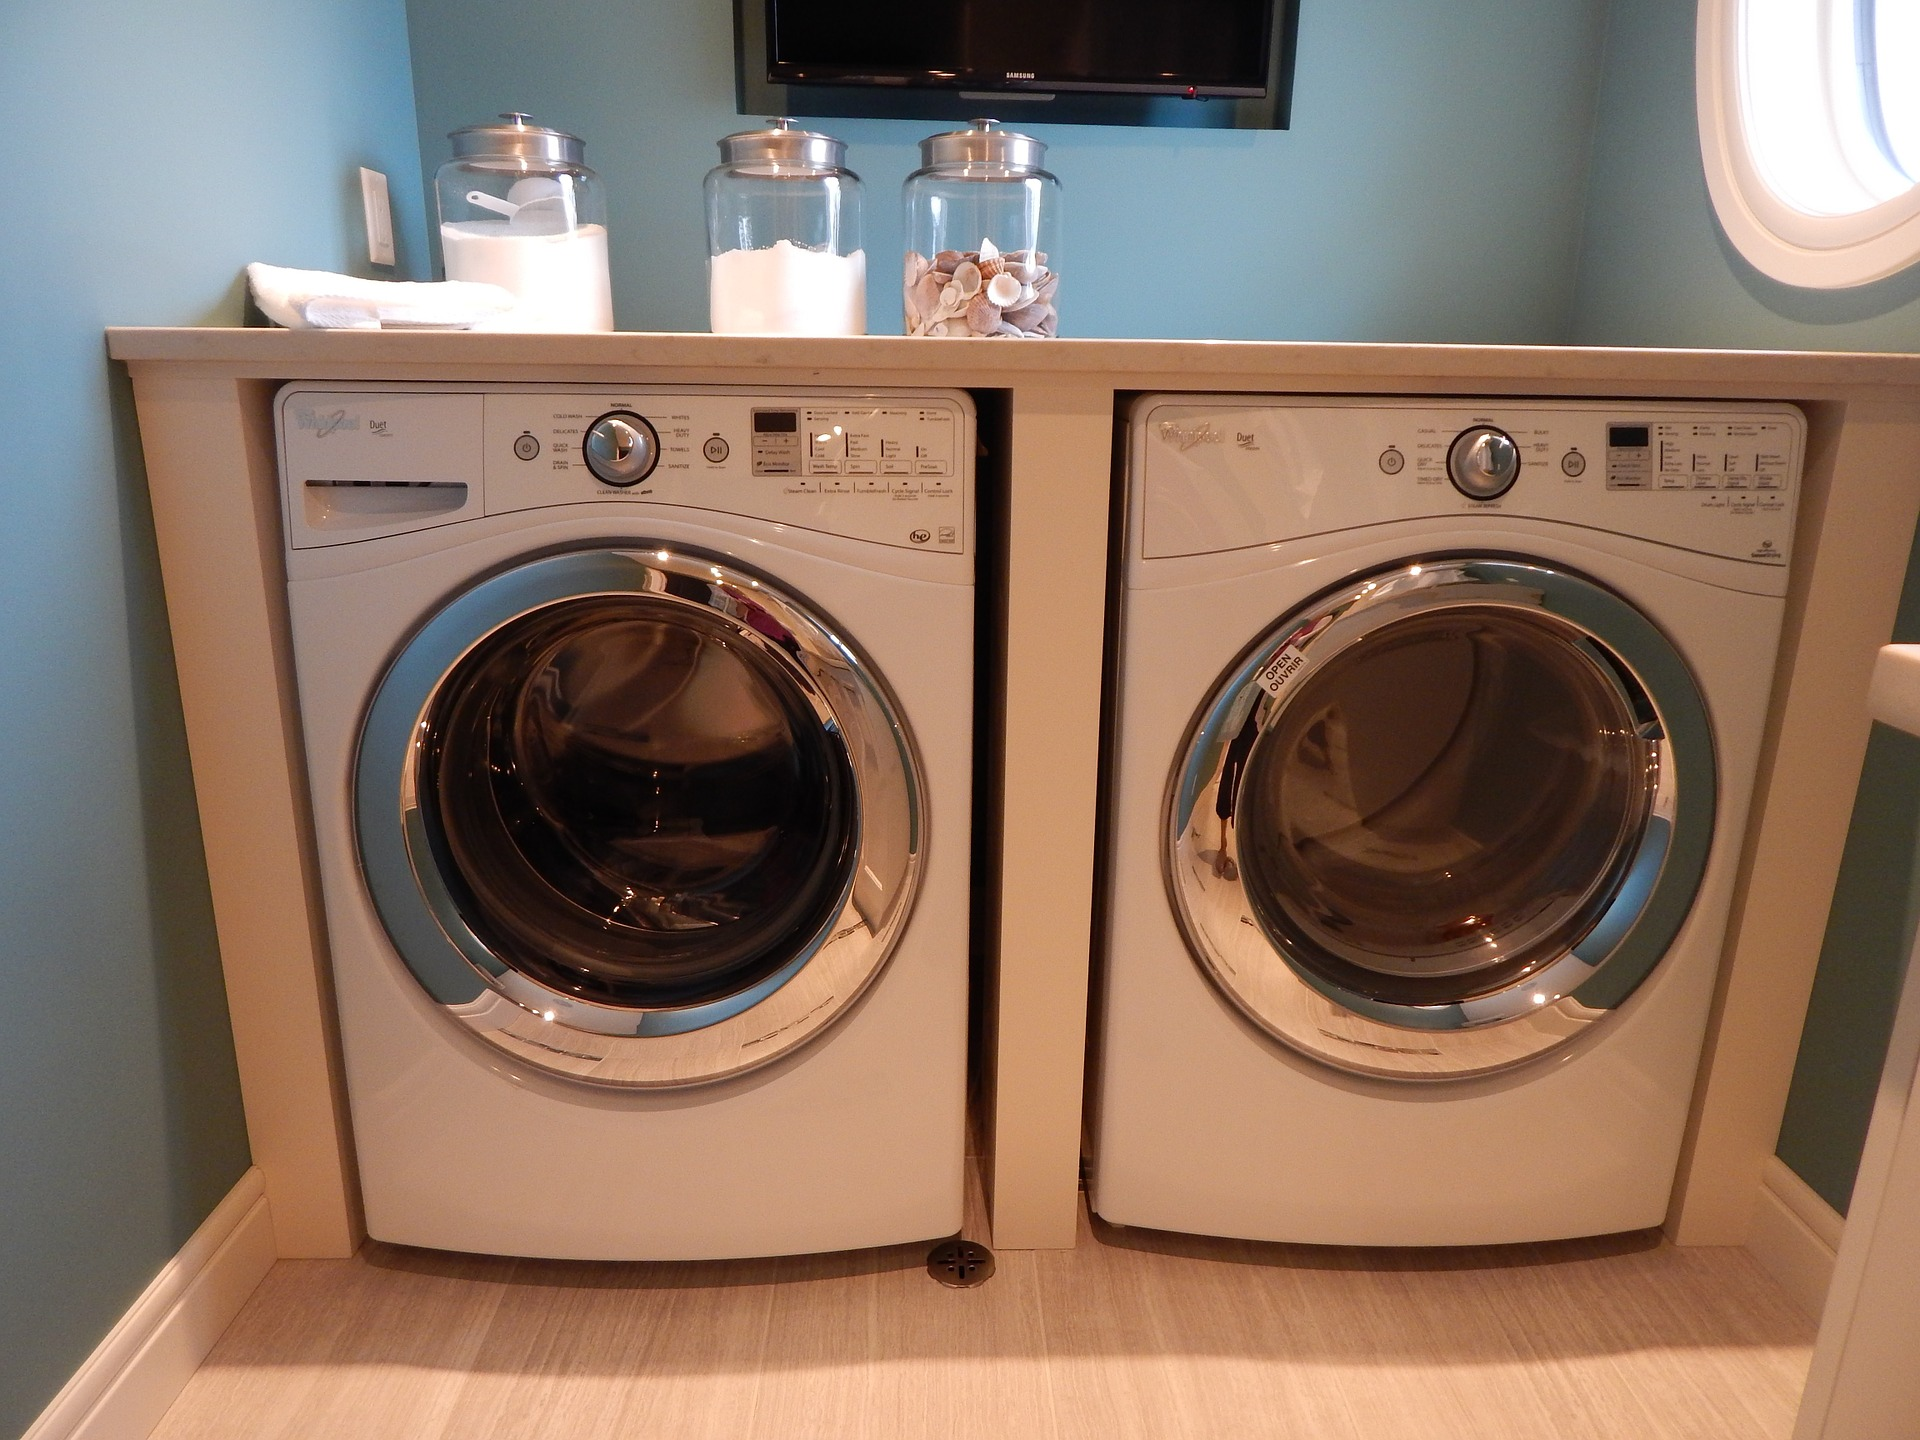 Appliance City - Home and Life - Laundry Room Tips for Small Spaces